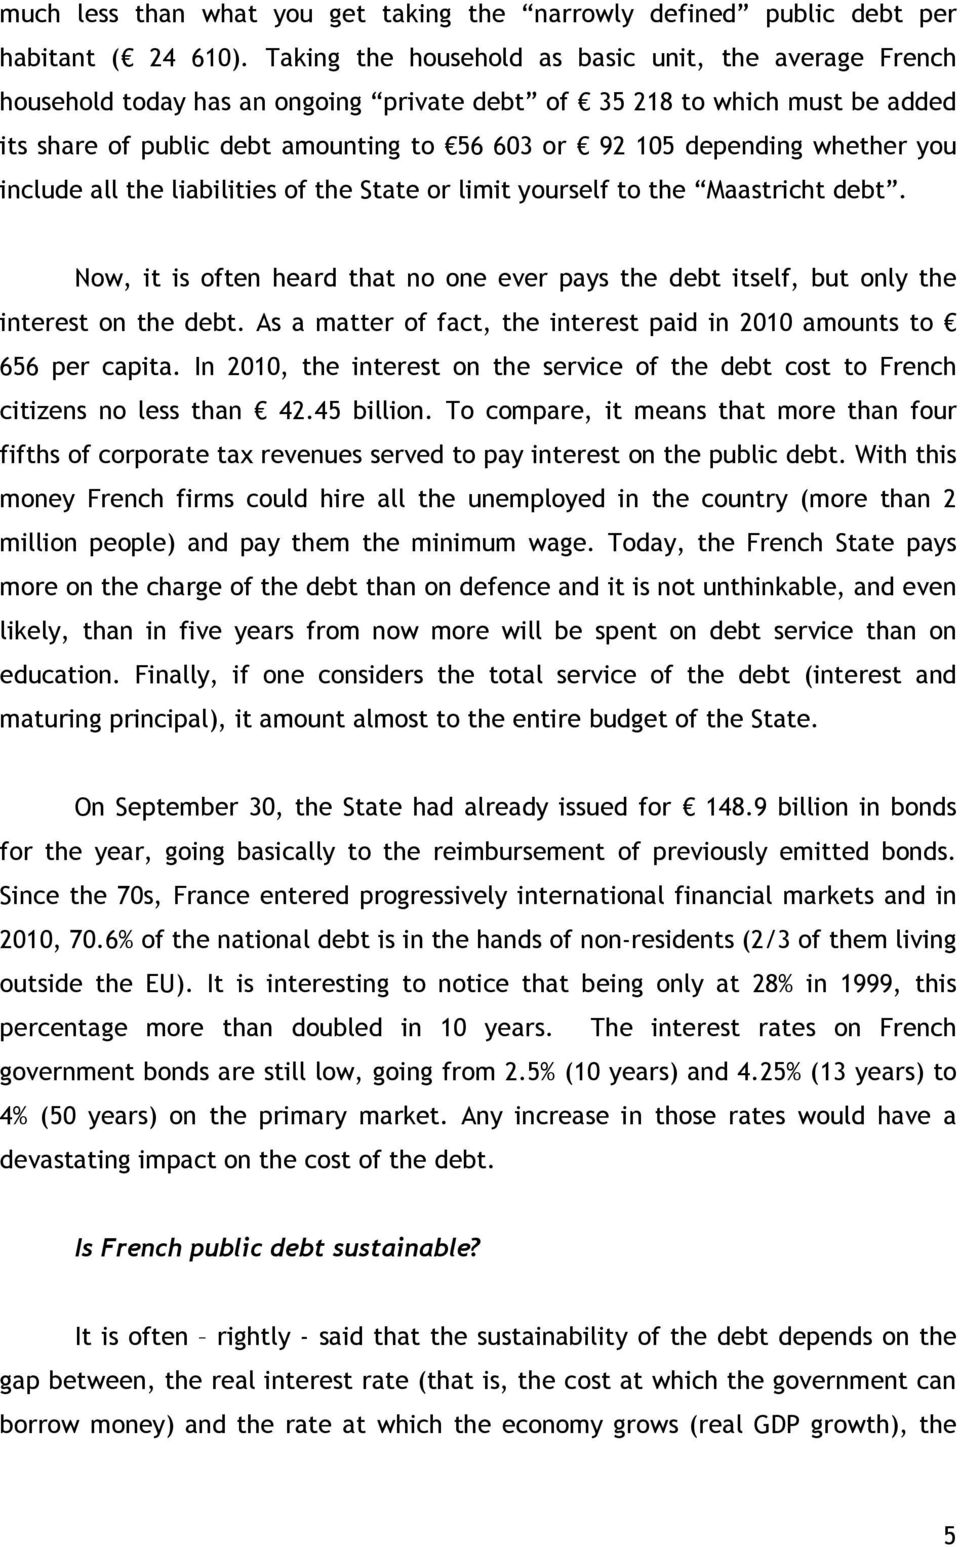 whether you include all the liabilities of the State or limit yourself to the Maastricht debt. Now, it is often heard that no one ever pays the debt itself, but only the interest on the debt.